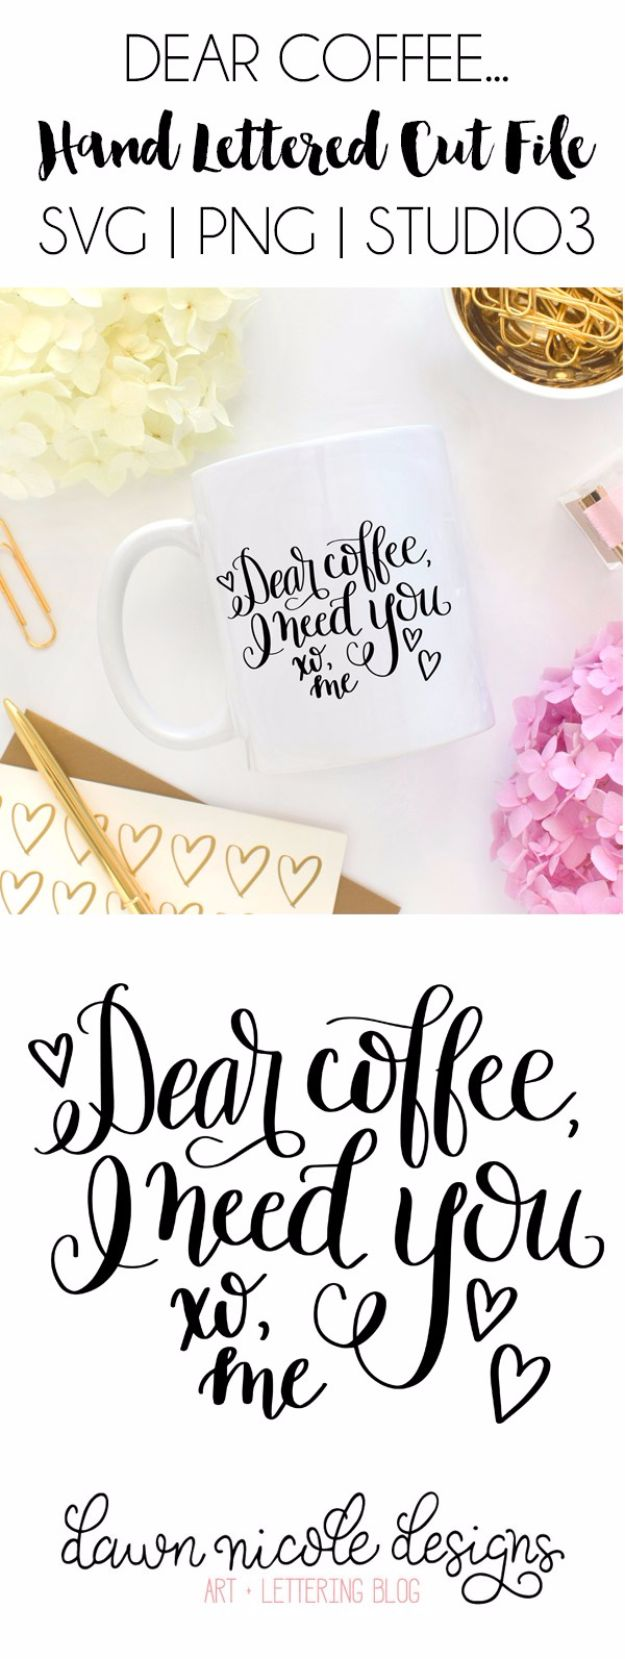 DIY Coffee Mugs - Dear Coffee Hand Lettered Free SVG Cut File - Easy Coffee Mug Ideas for Homemade Gifts and Crafts - Decorate Your Coffee Cups and Tumblers With These Cool Art Ideas - Glitter, Paint, Sharpie Craft, Nail Polish Water Marble and Teen Projects #diygifts #easydiy